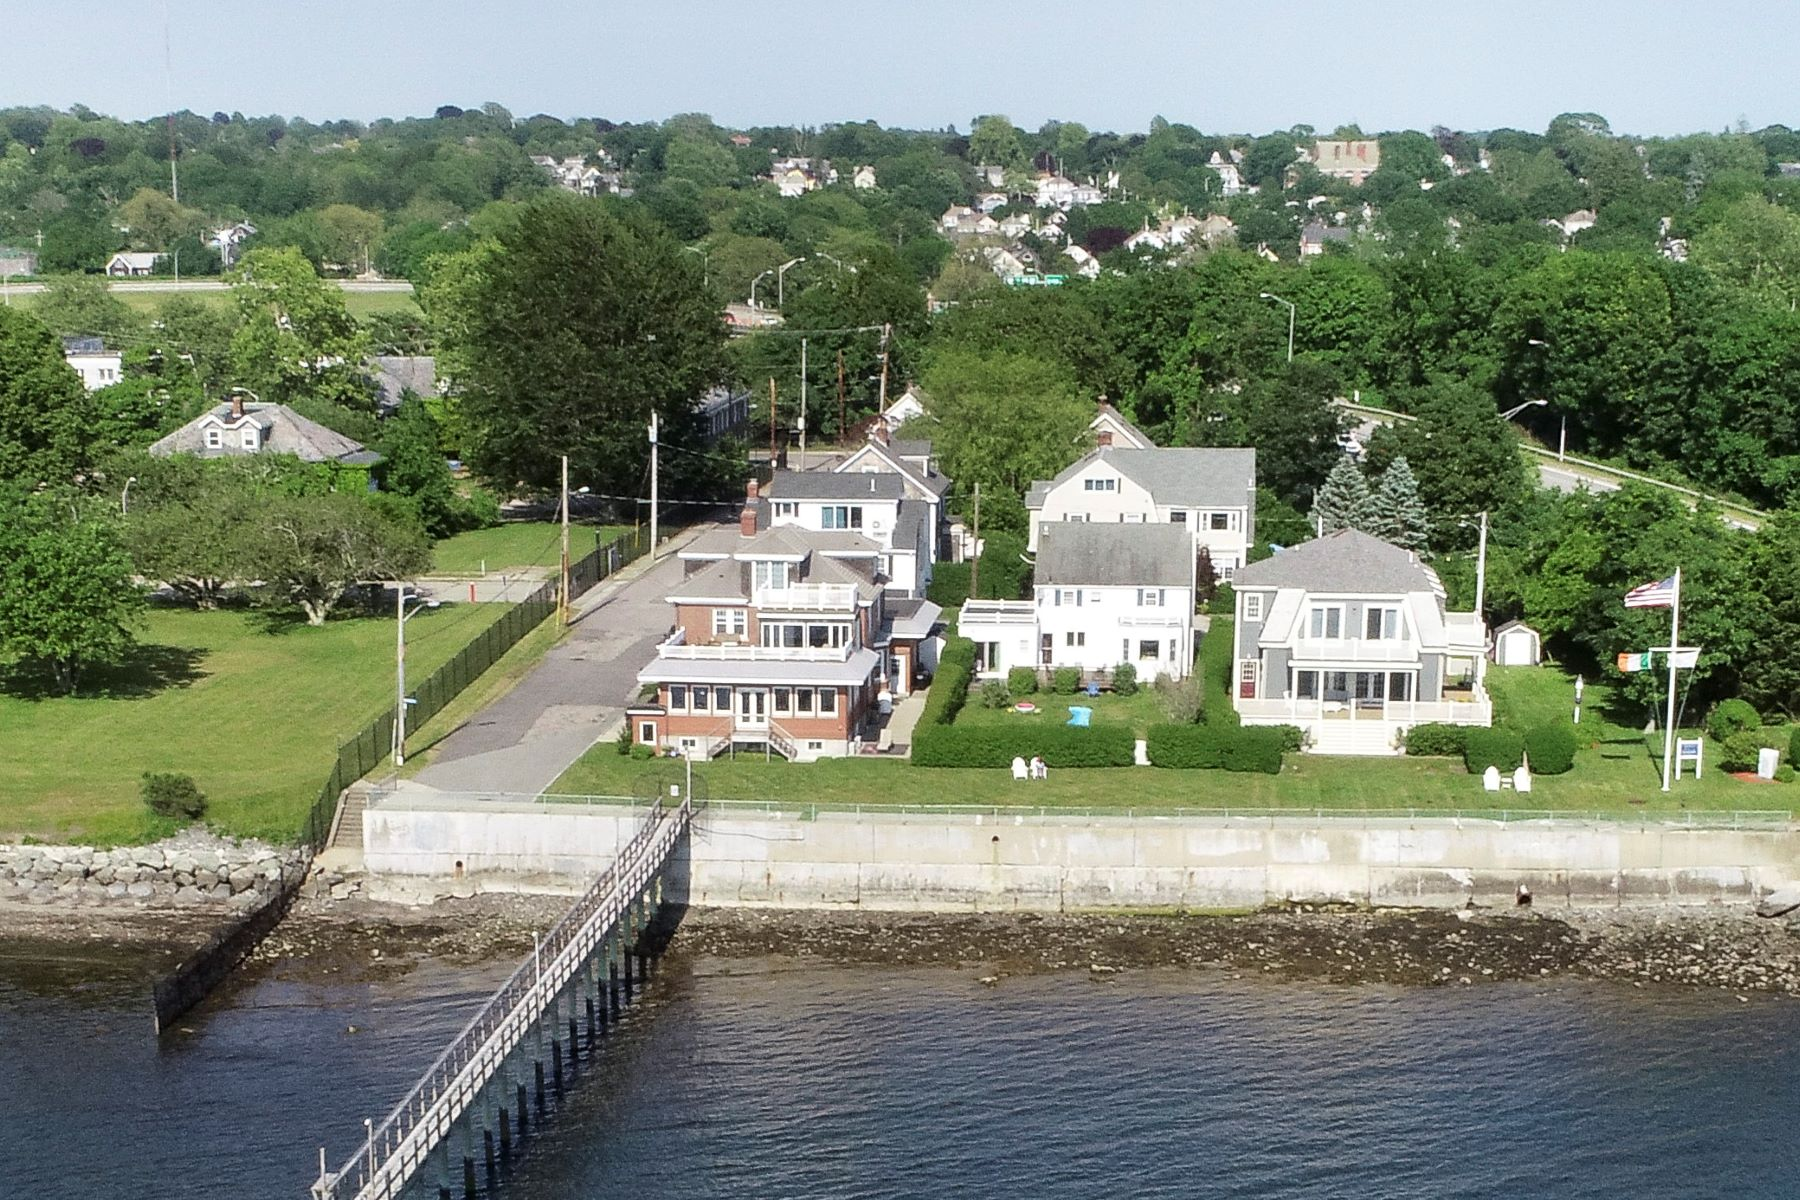 Single Family Homes for Sale at Newport Harborfront with Deepwater Dock 1 Cypress Street Newport, Rhode Island 02840 United States